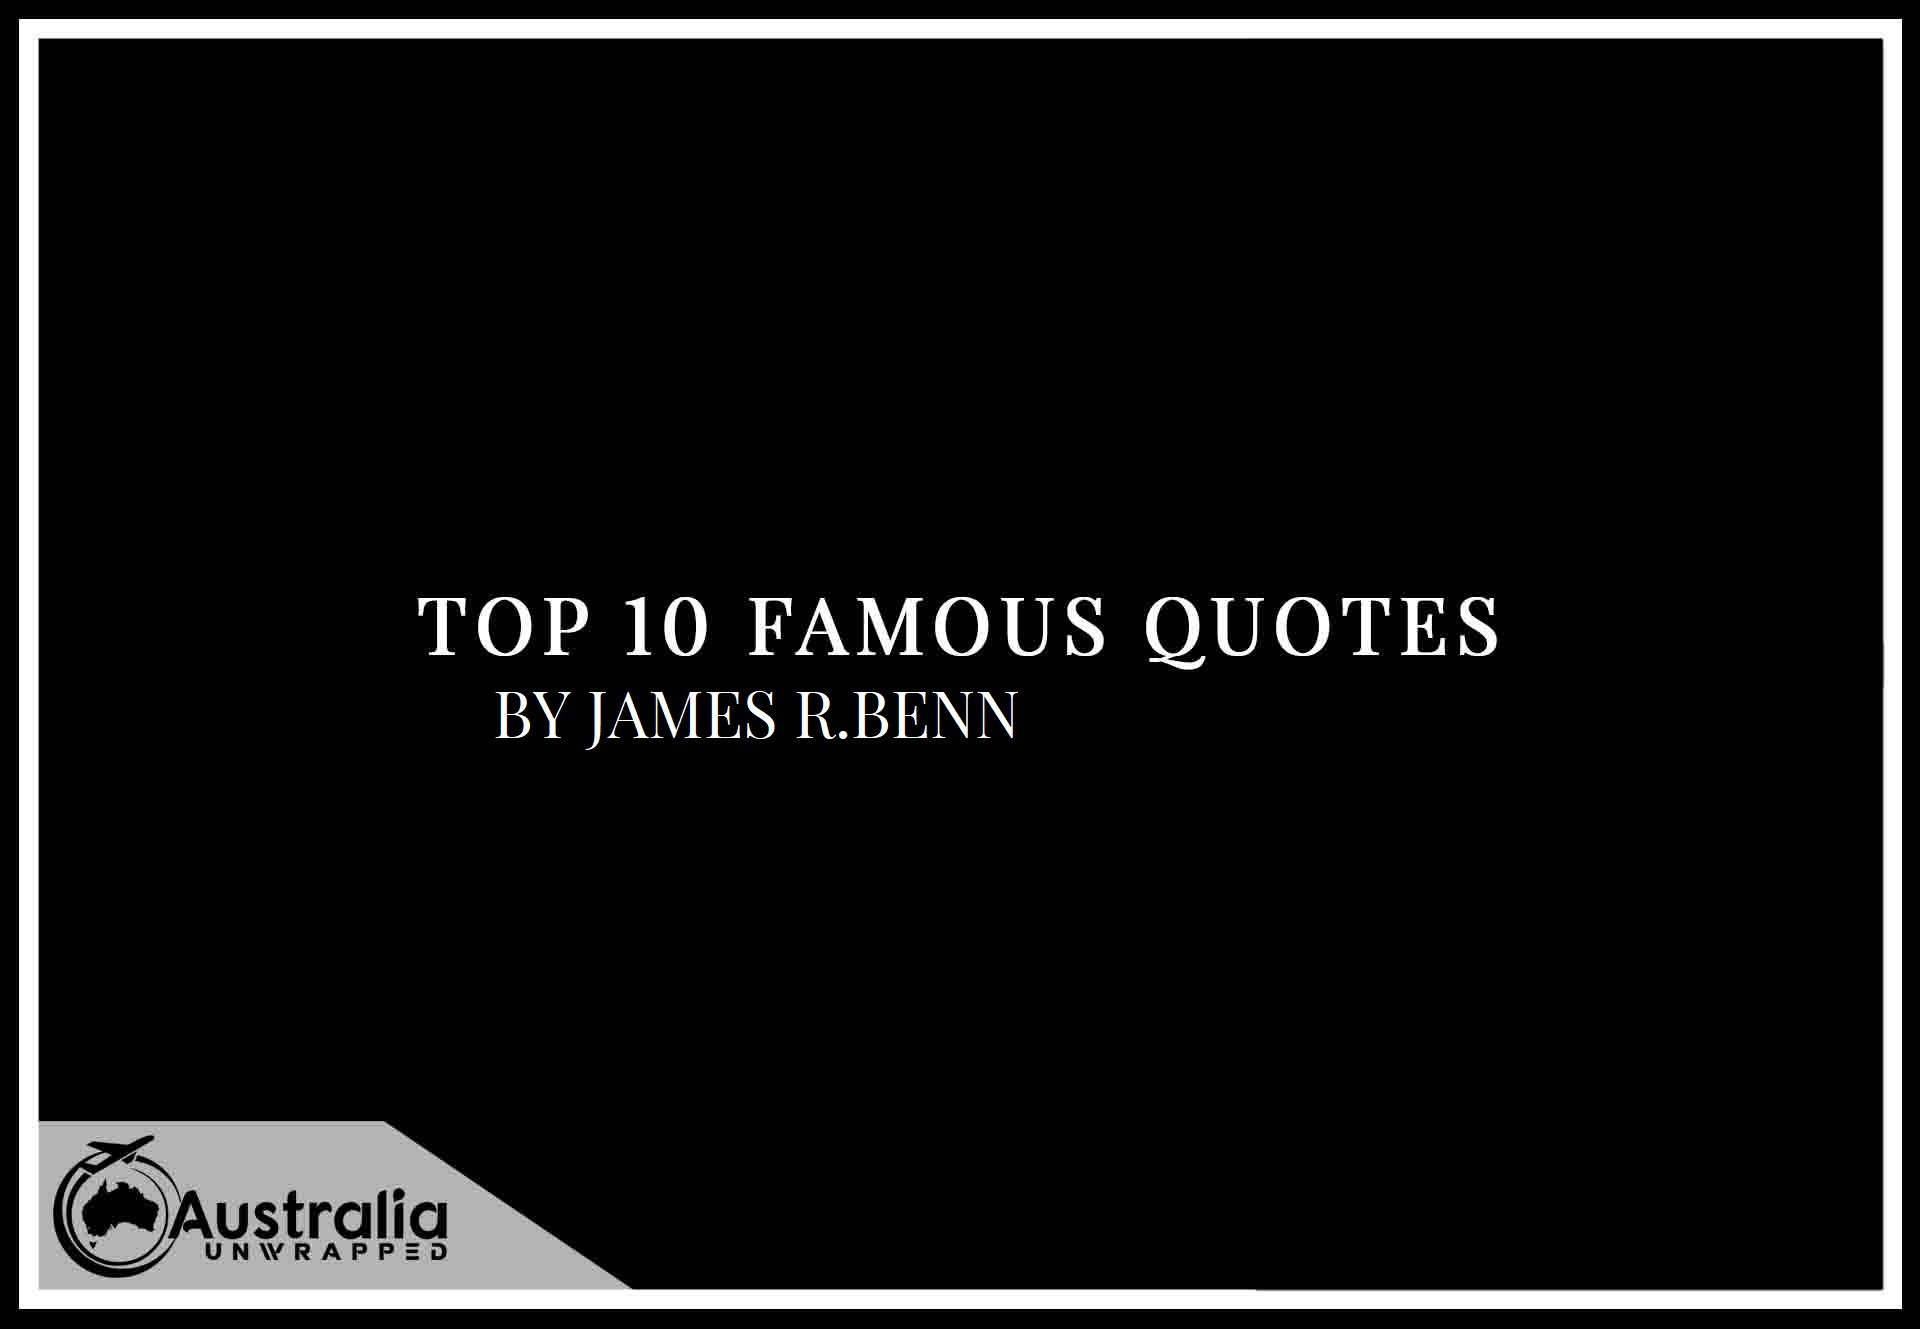 Top 10 Famous Quotes by Author James R. Benn